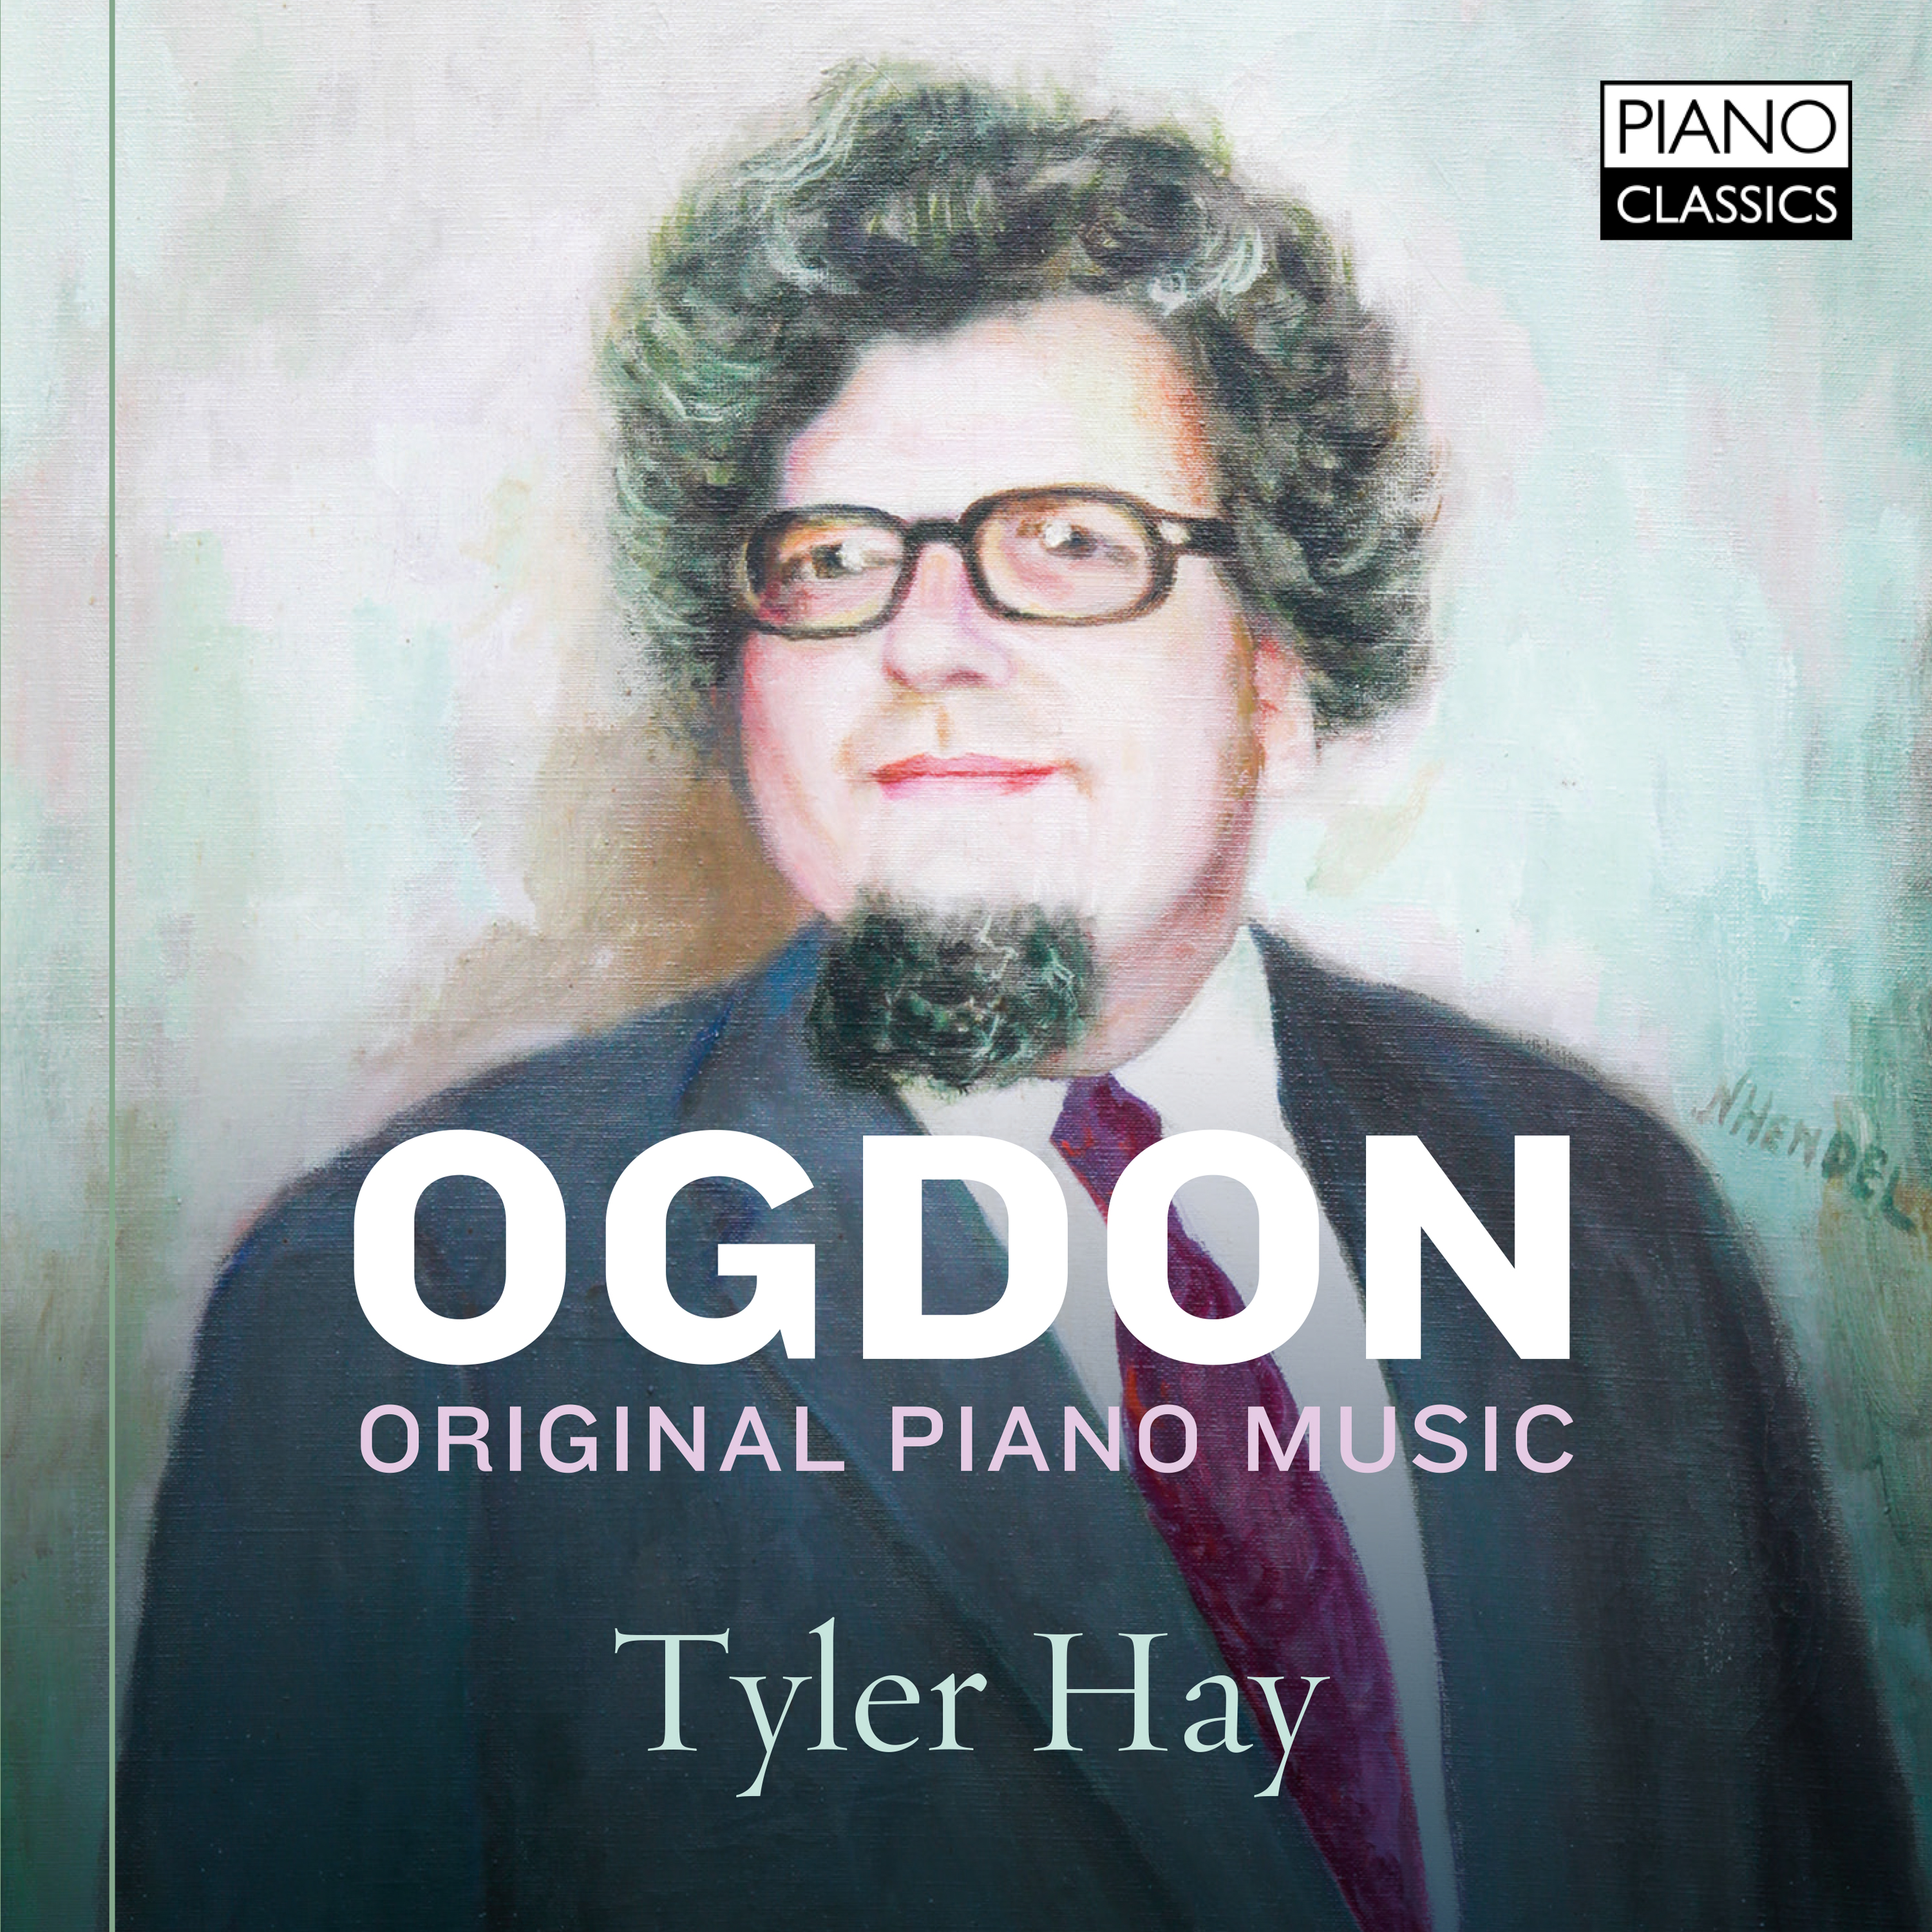 Ogdon: Original Piano Music